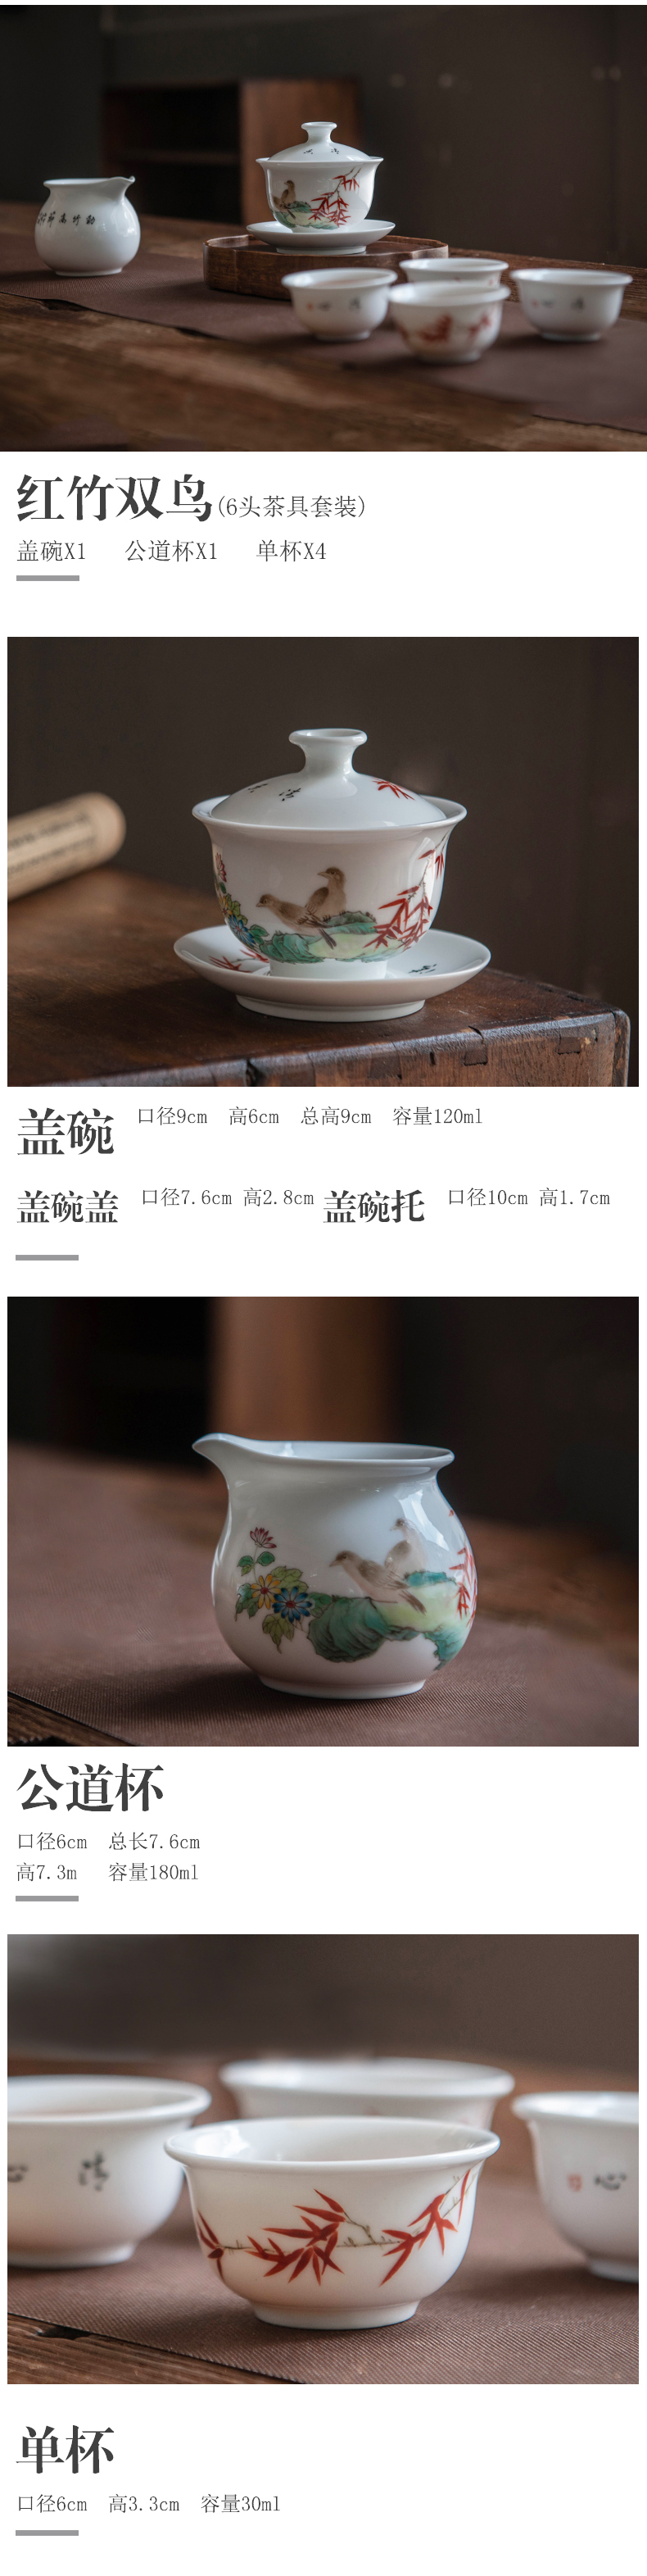 Jingdezhen hand - made ceramic tea set home office receive a visitor the light blue and white porcelain is excessive high - end tea set